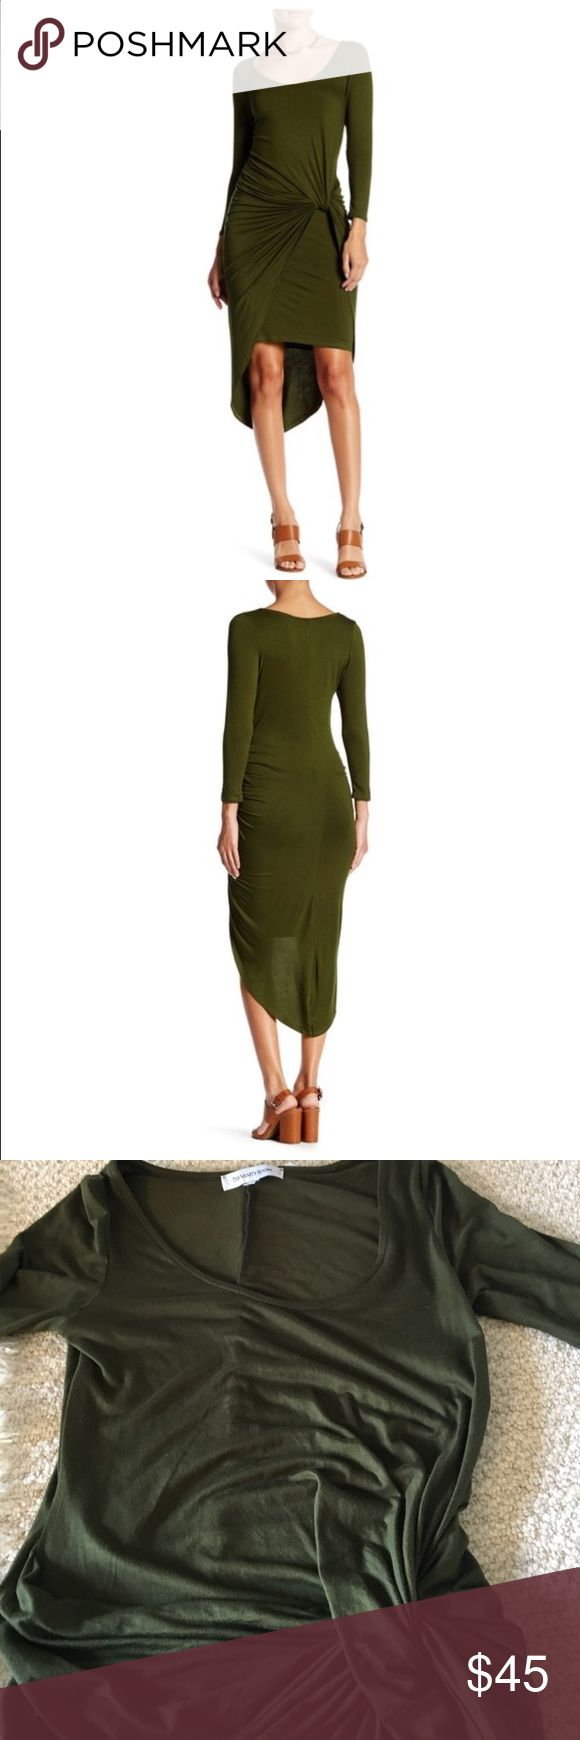 Super stylish dress! Brand new fantastic dress beautiful army color , stretch and comfy and chic! Dresses